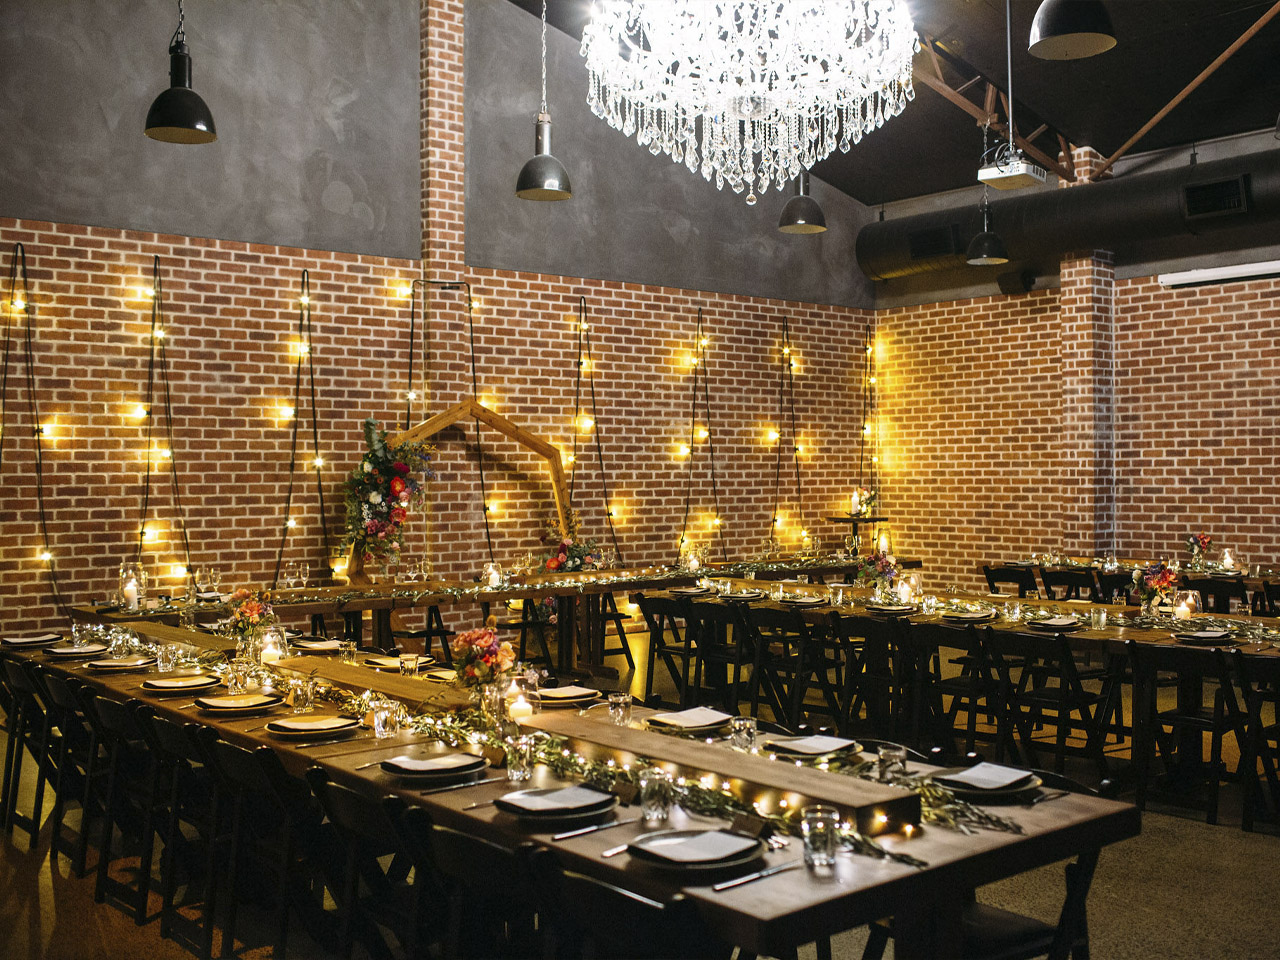 Full room setting with long tables and wall light decorations